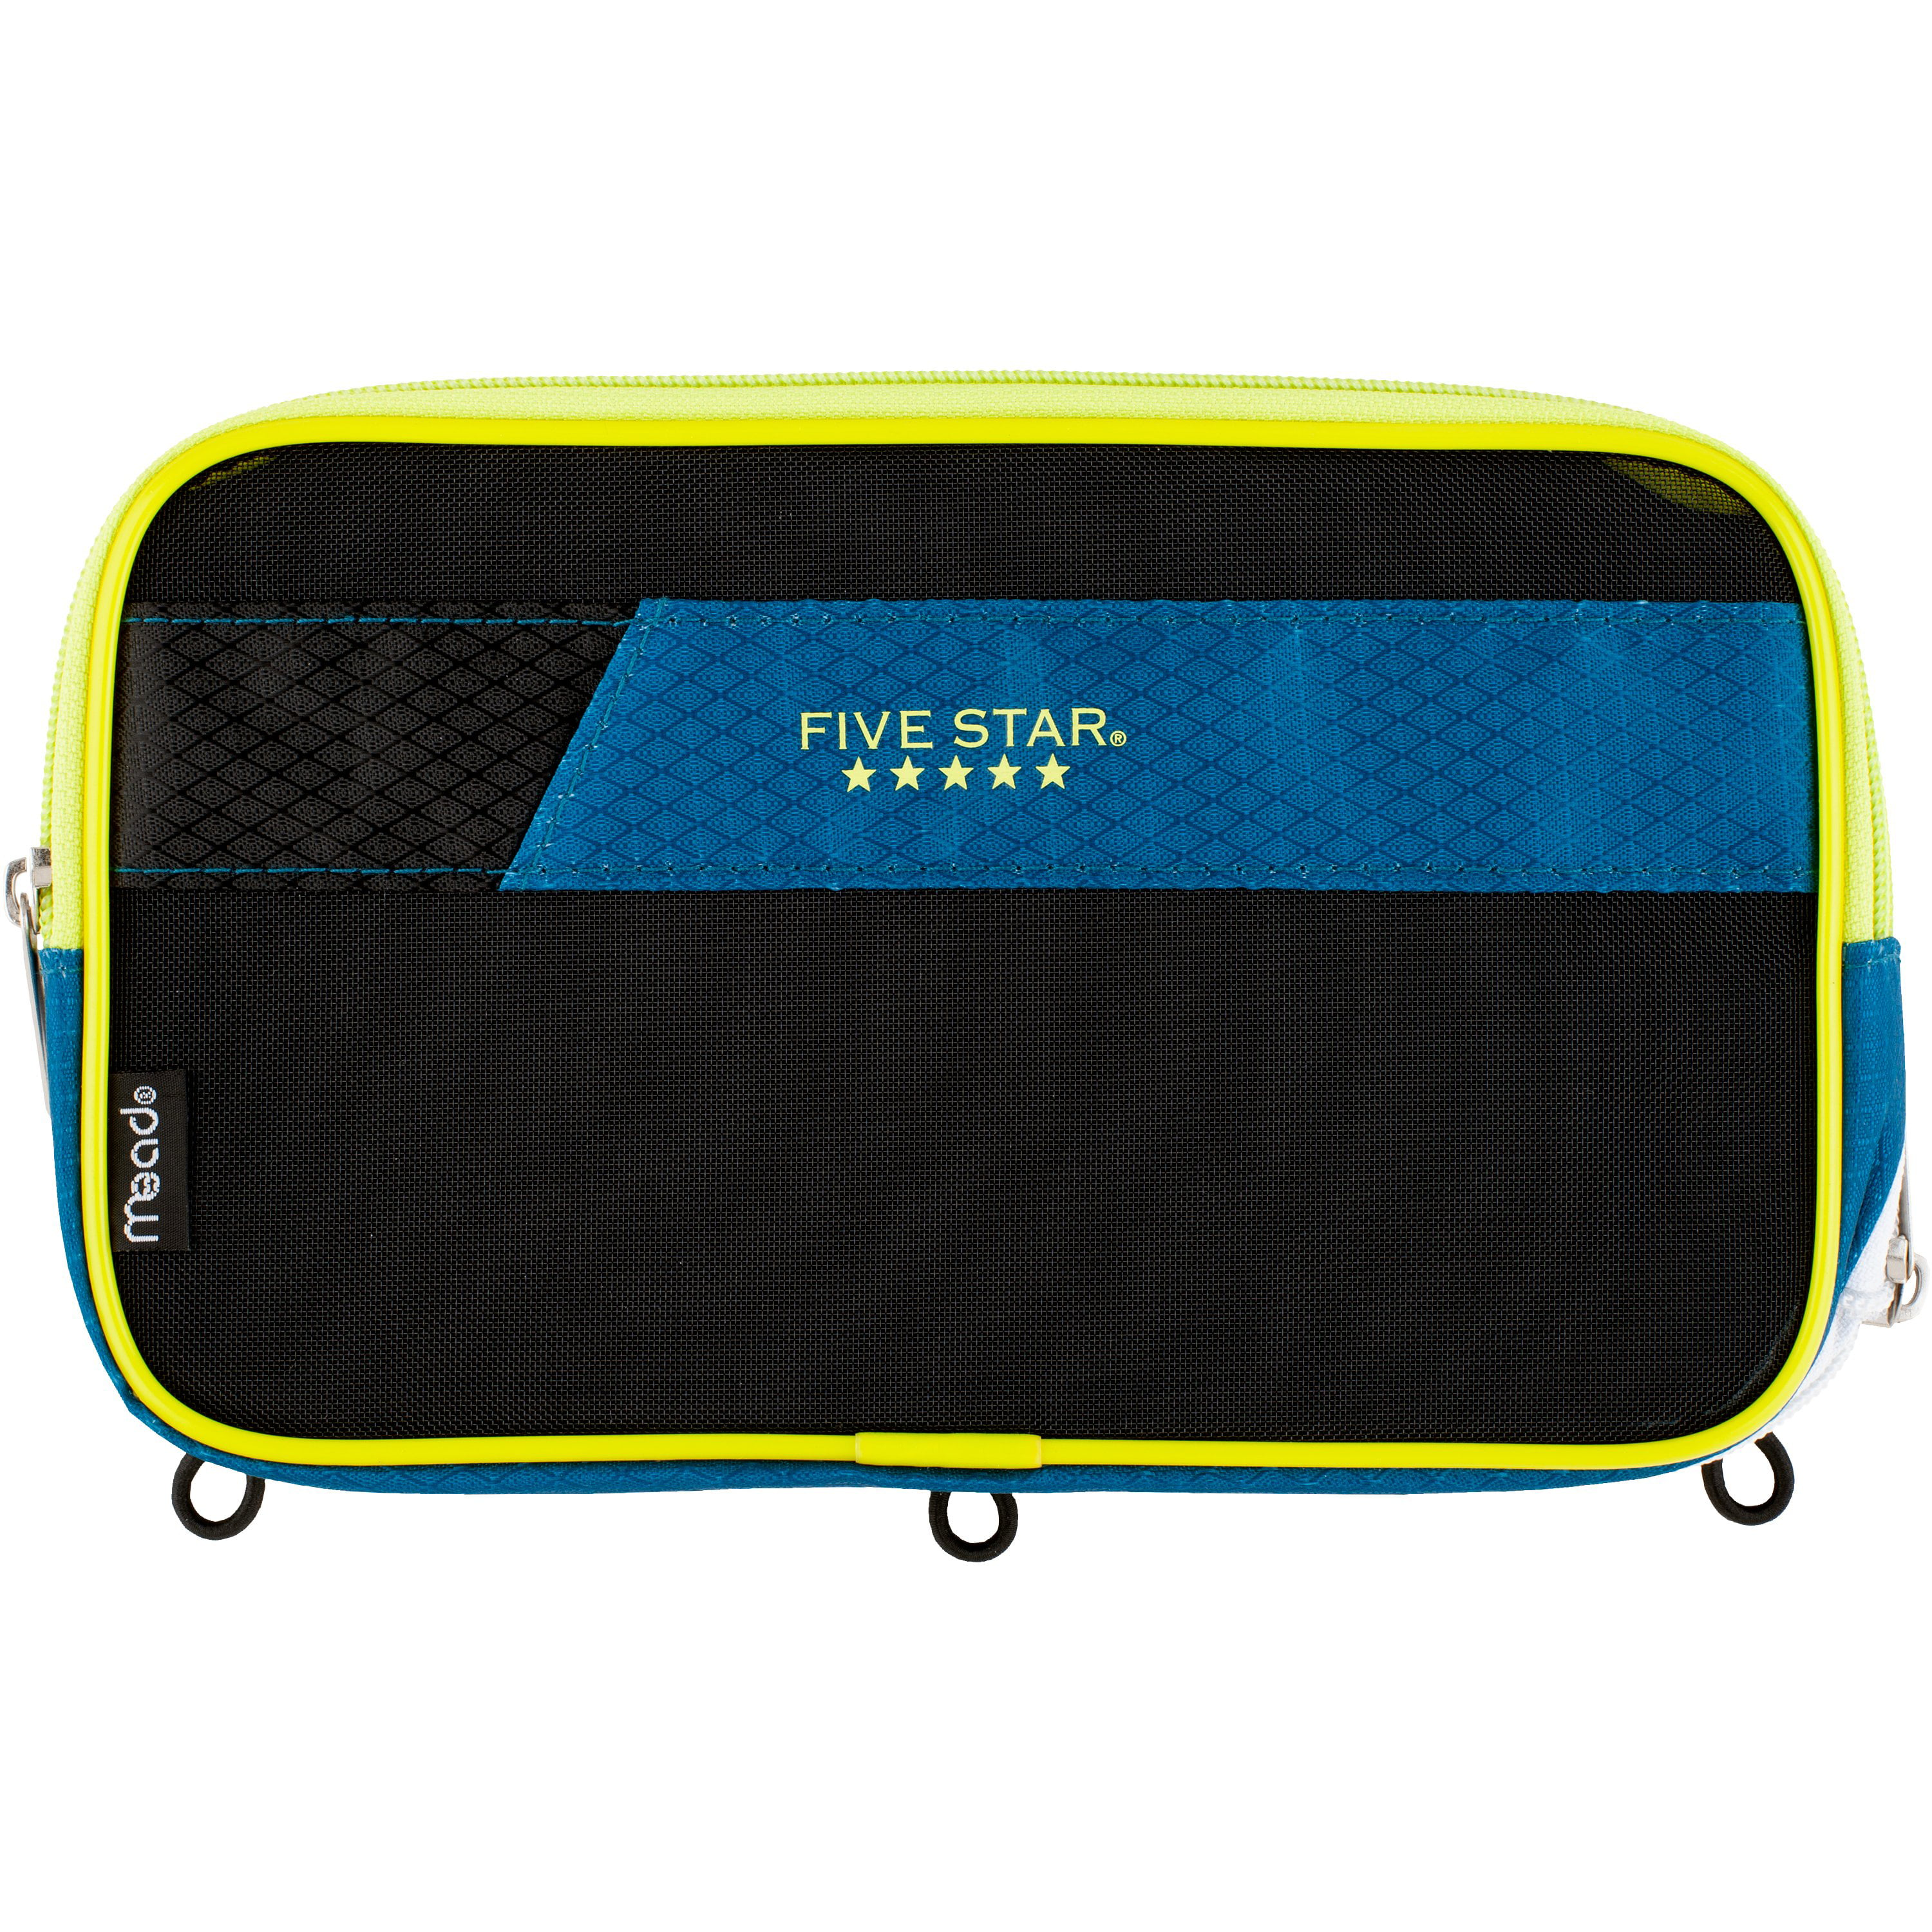 Five Star Xpanz Pencil Pouch, Polyester, Assorted Colors (50211)